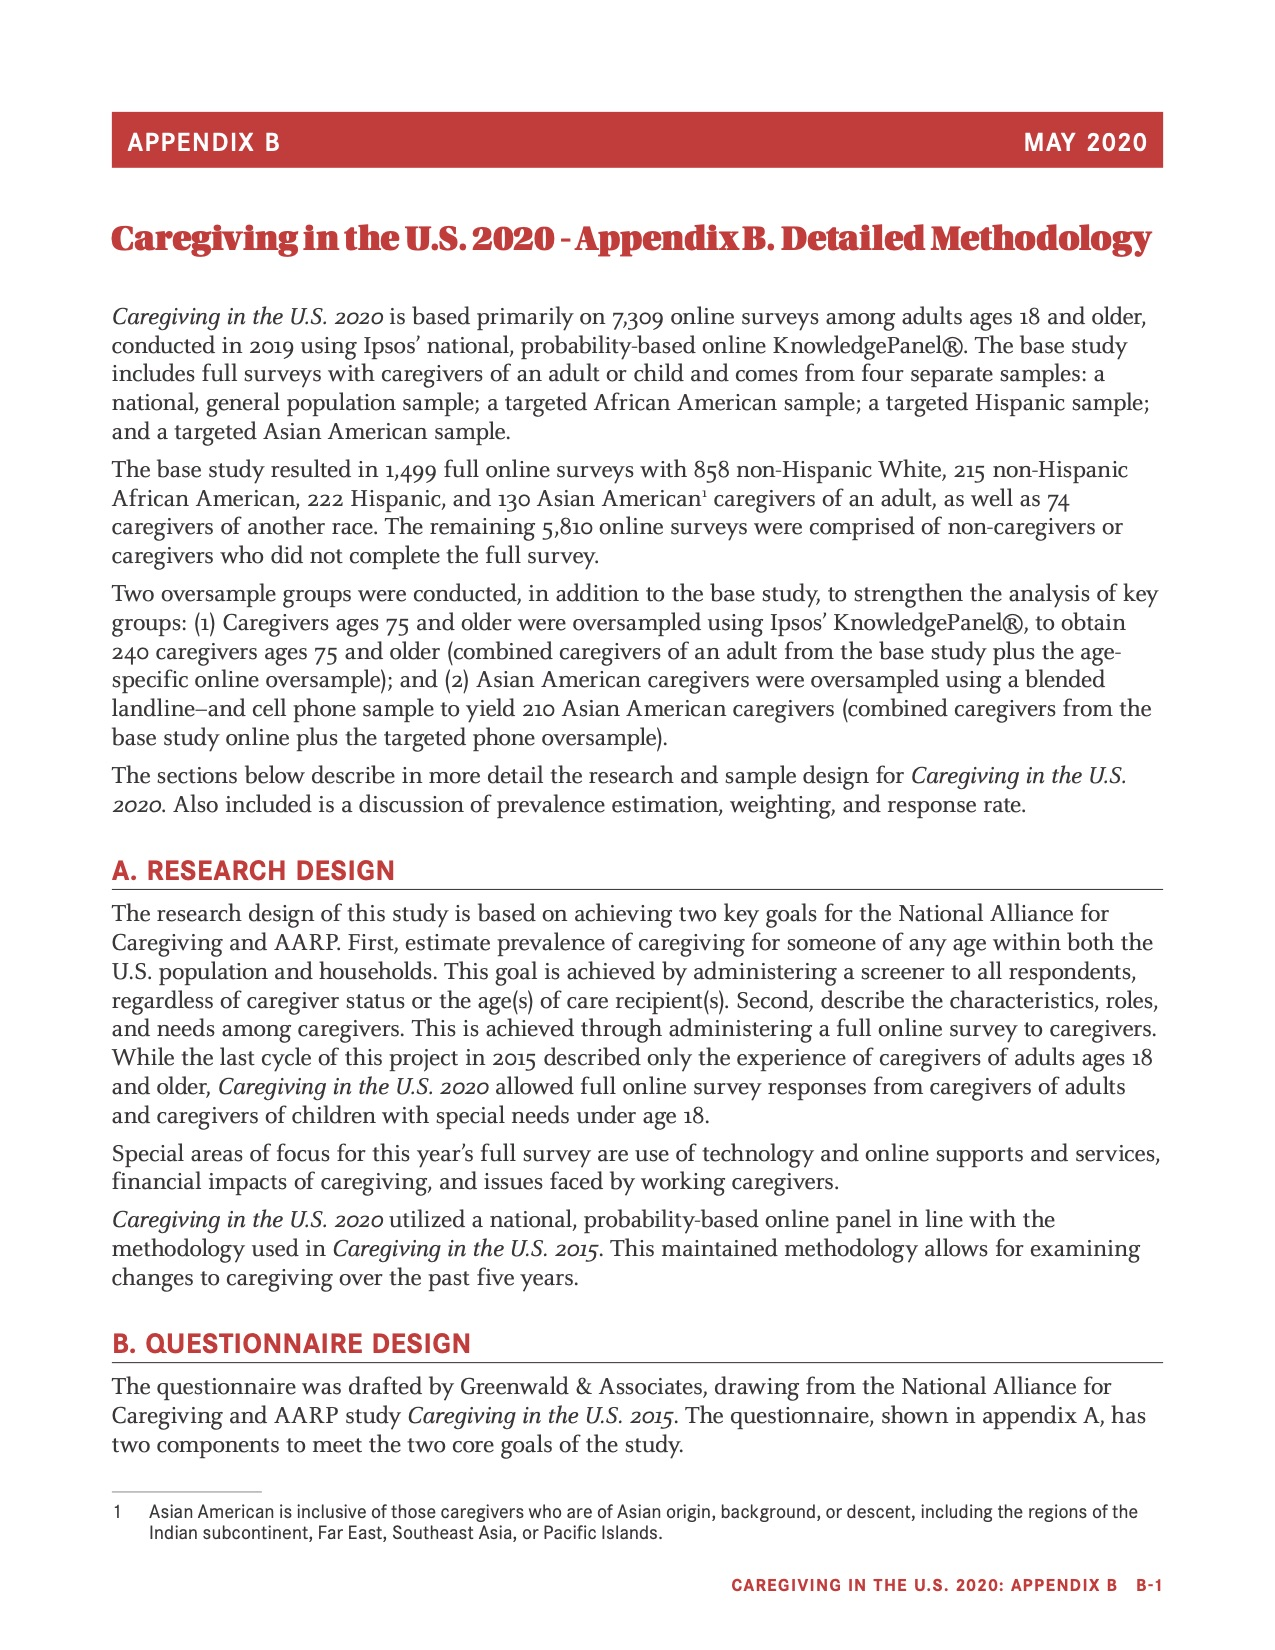 Appendix B Caregiving in the United States 2020 Cover Photo